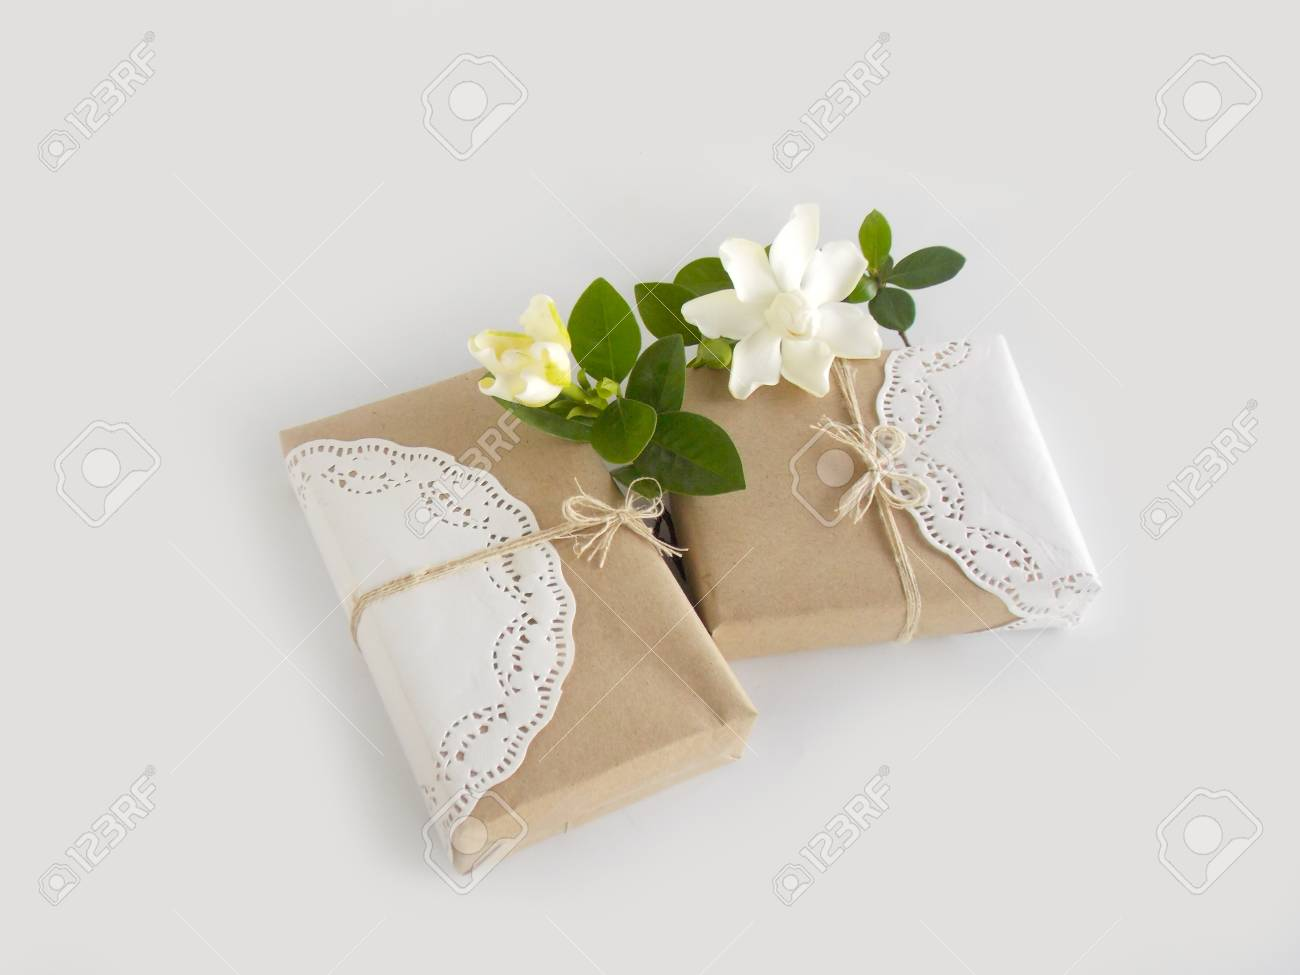 Gift Box With White Gardenia Flower Stock Photo Picture And Royalty